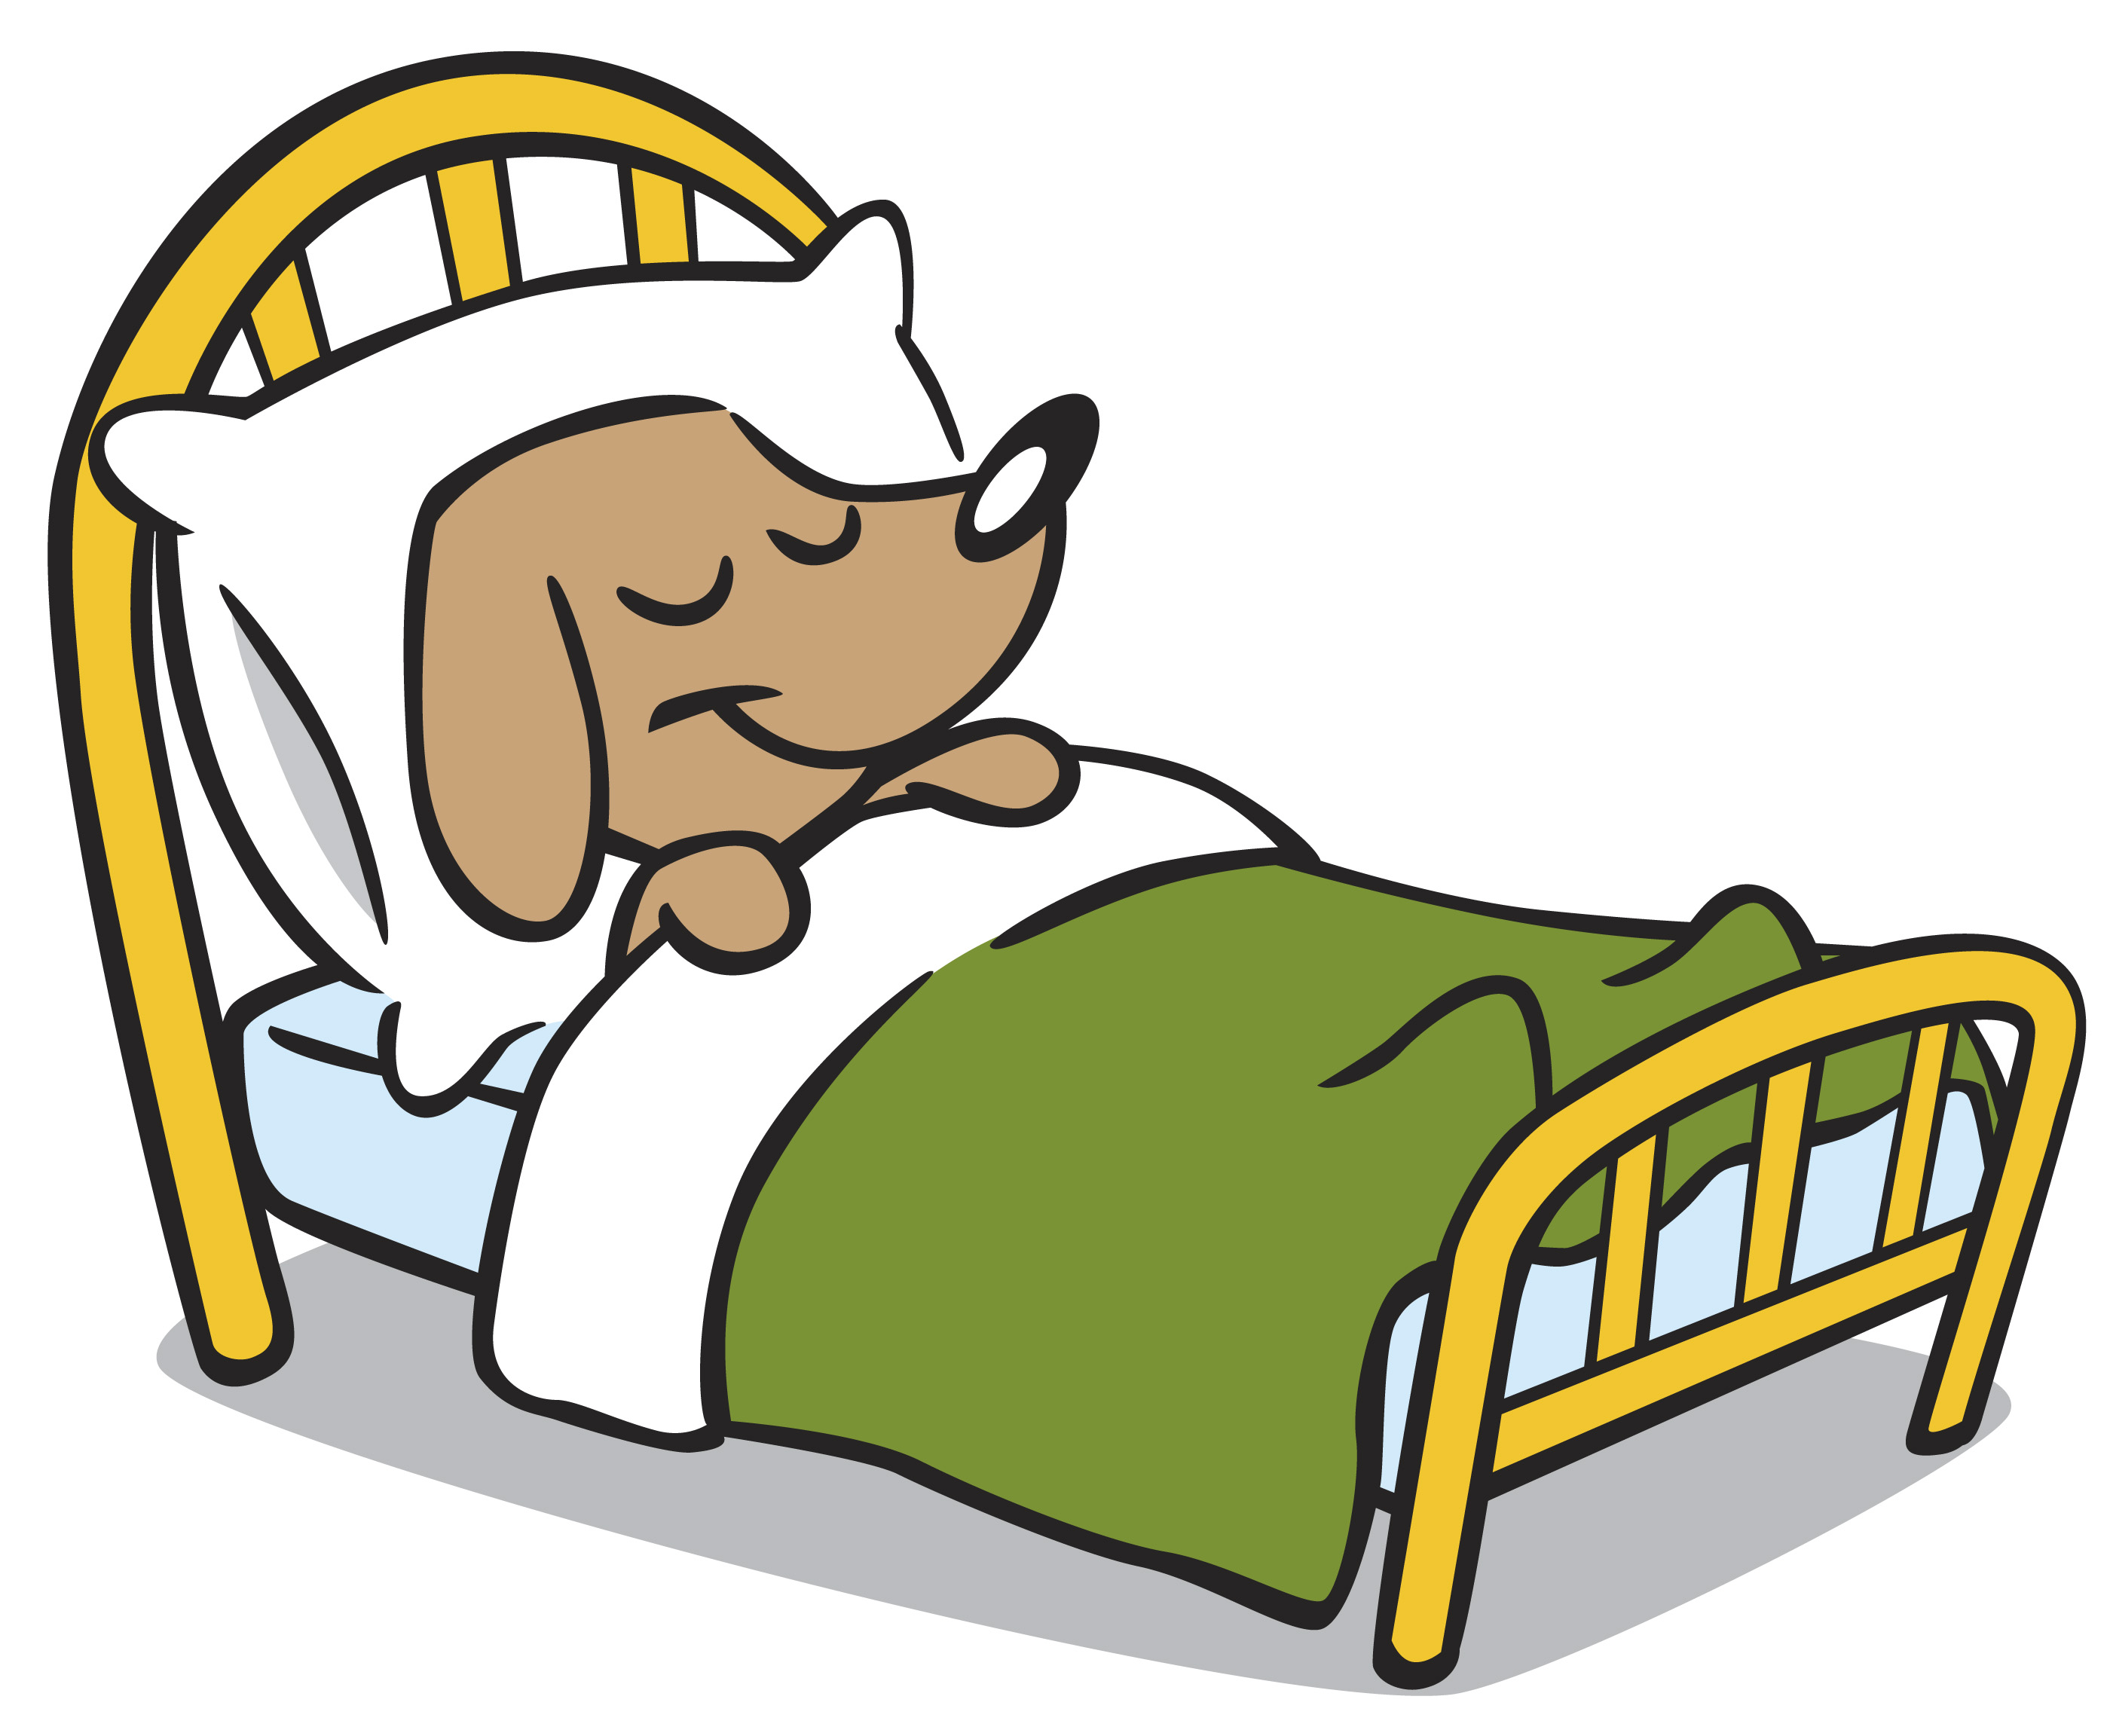 Blanket clipart cute bed Clipart Clipart Images Art Bed